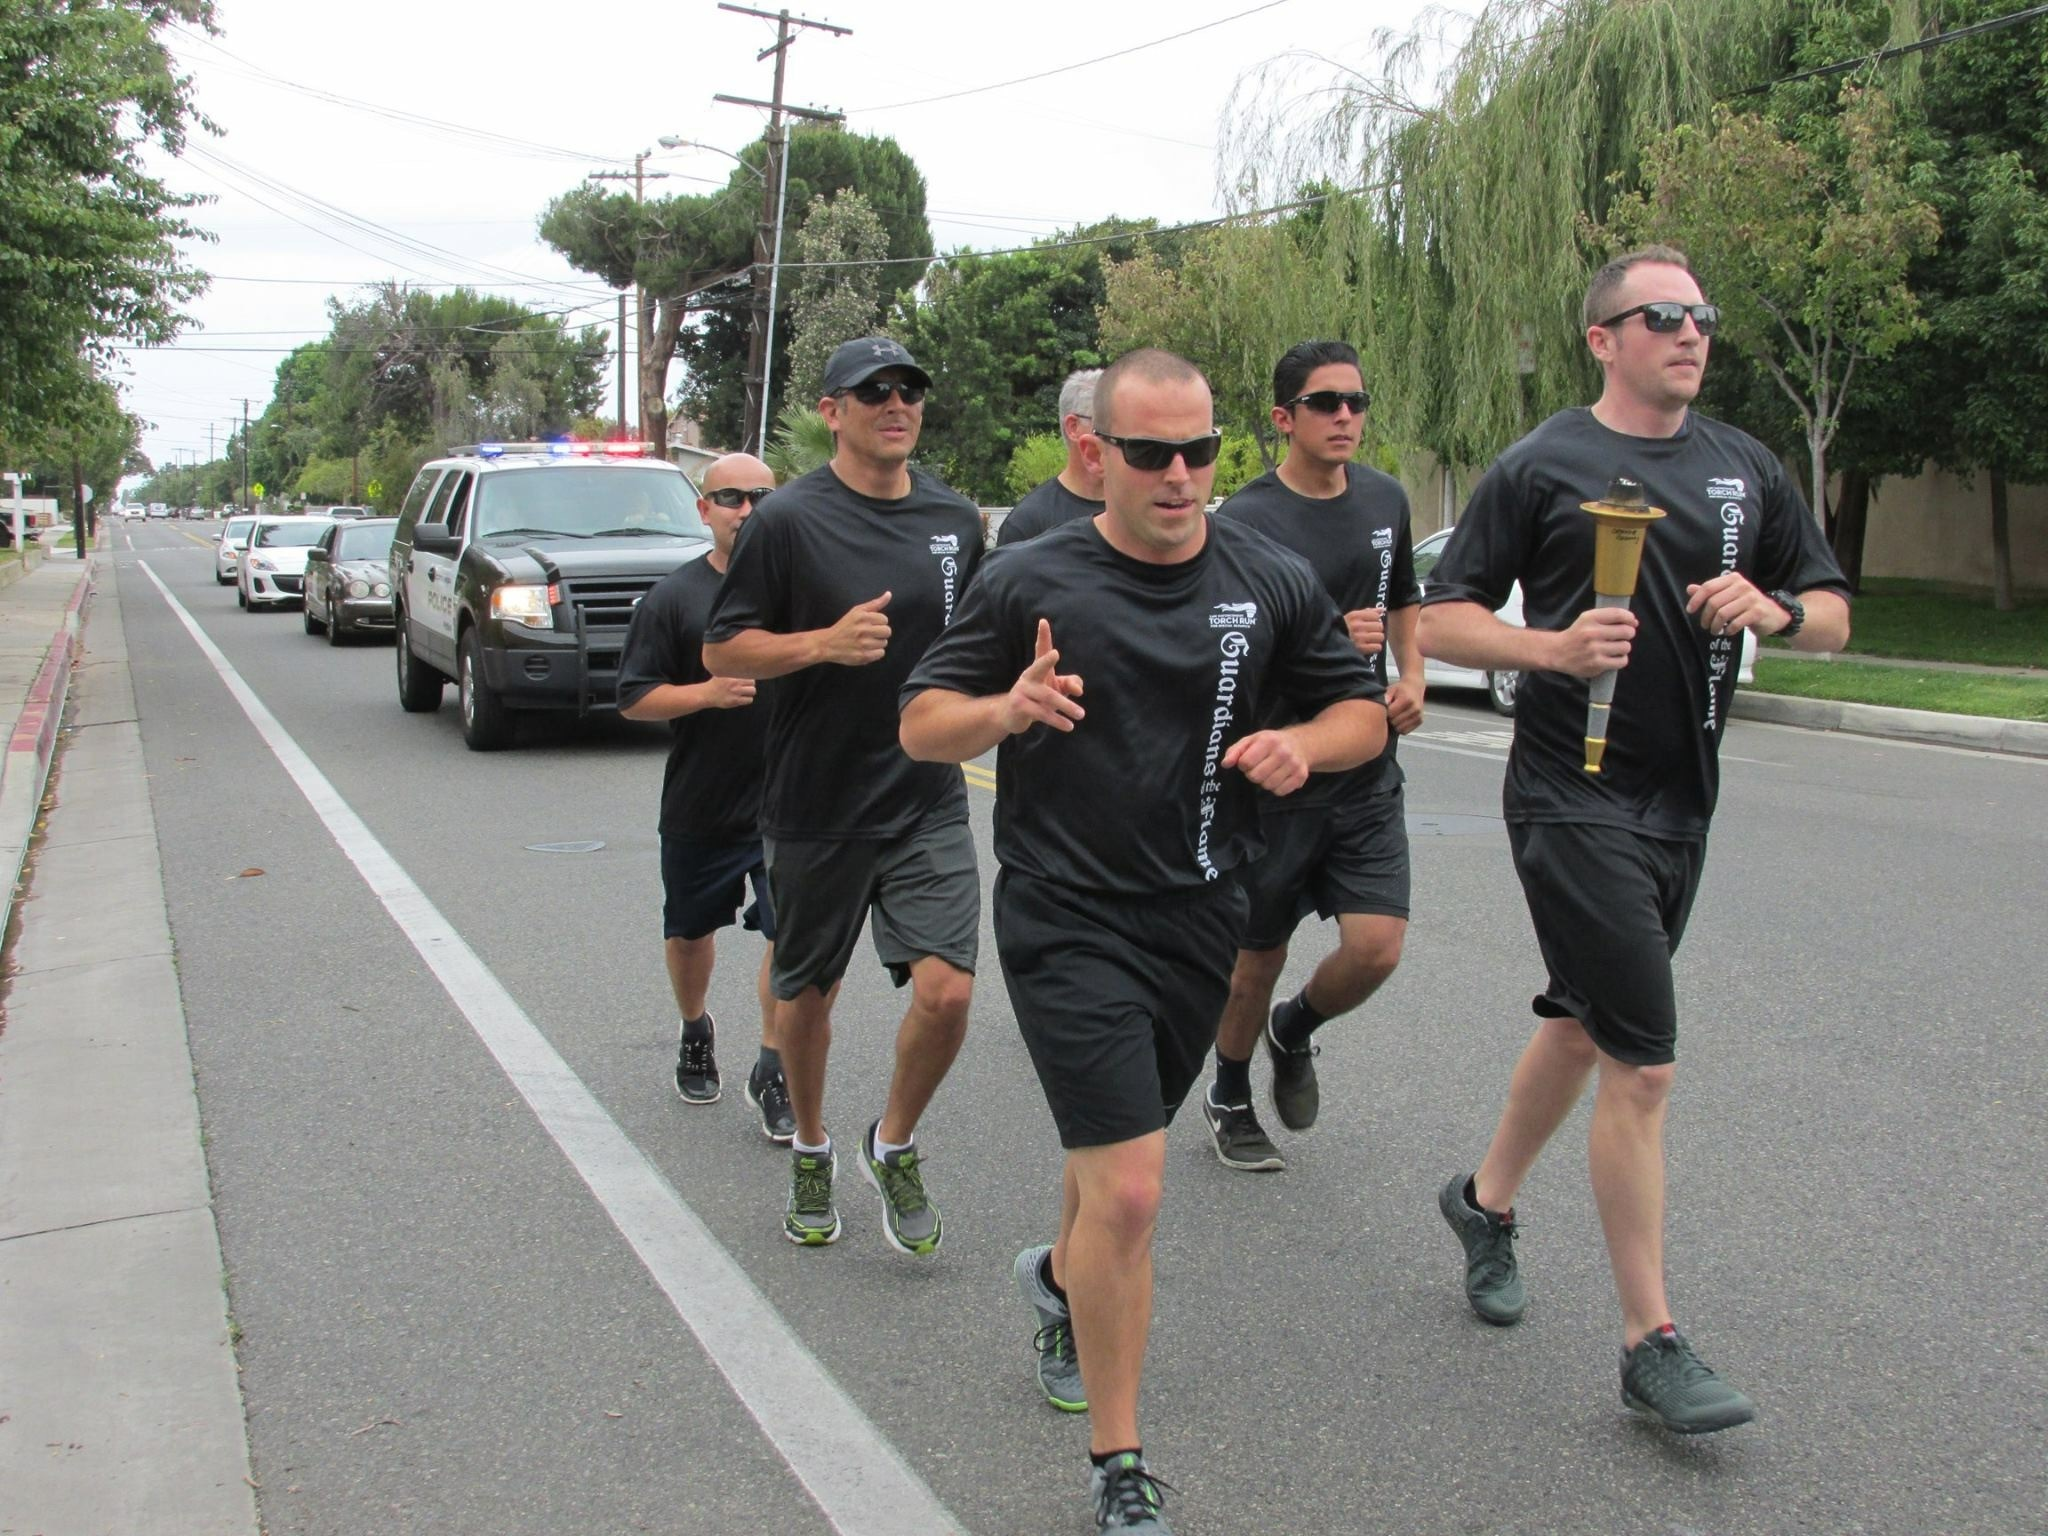 Special Olympic Torch Run 2015